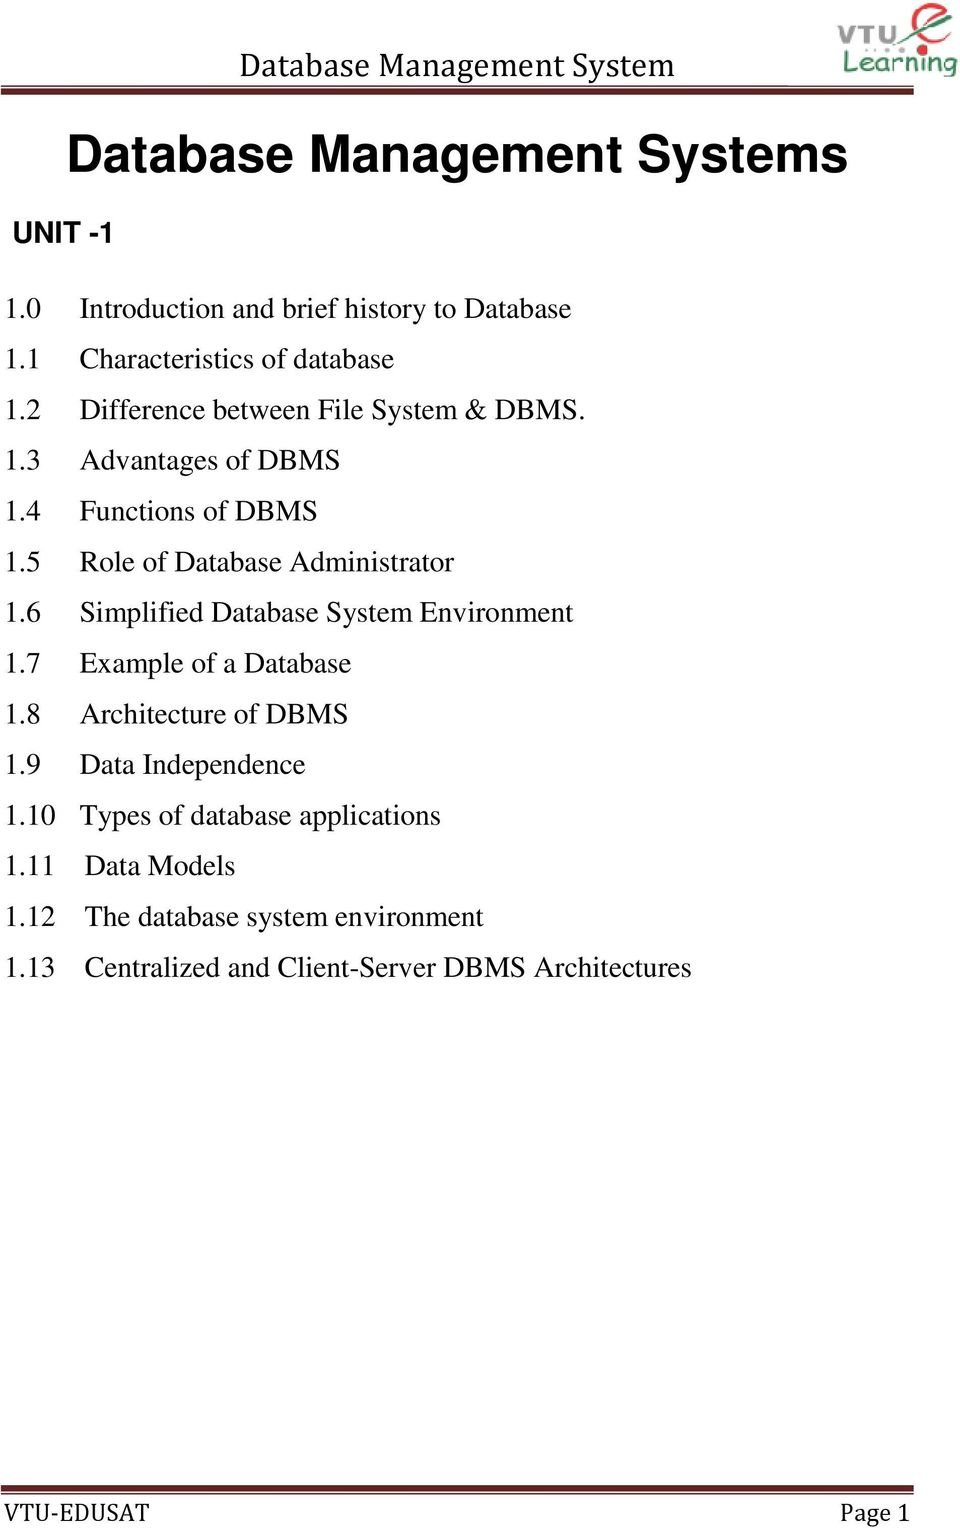 6 Simplified Database System Environment 1.7 Example of a Database 1.8 Architecture of DBMS 1.9 Data Independence 1.